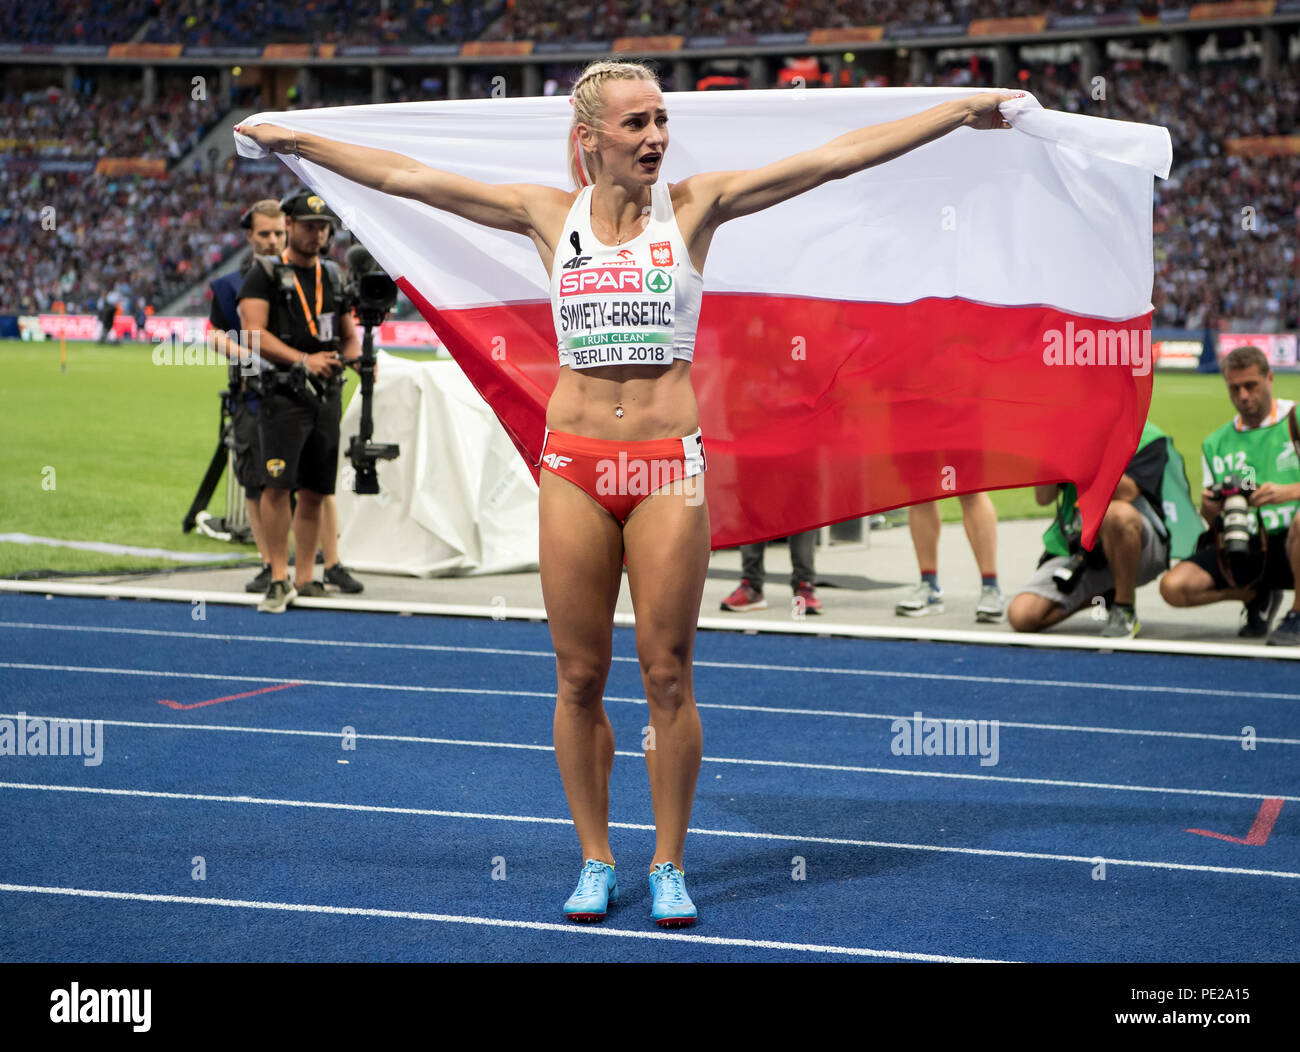 Berlin, Germany. 11th Aug, 2018. Athletics, European Championship in the Olympic Stadium, 400 m final, women: Justyna Swiety-Ersetic from Poland cheers at the finish line. Credit: Sven Hoppe/dpa/Alamy Live News - Stock Image